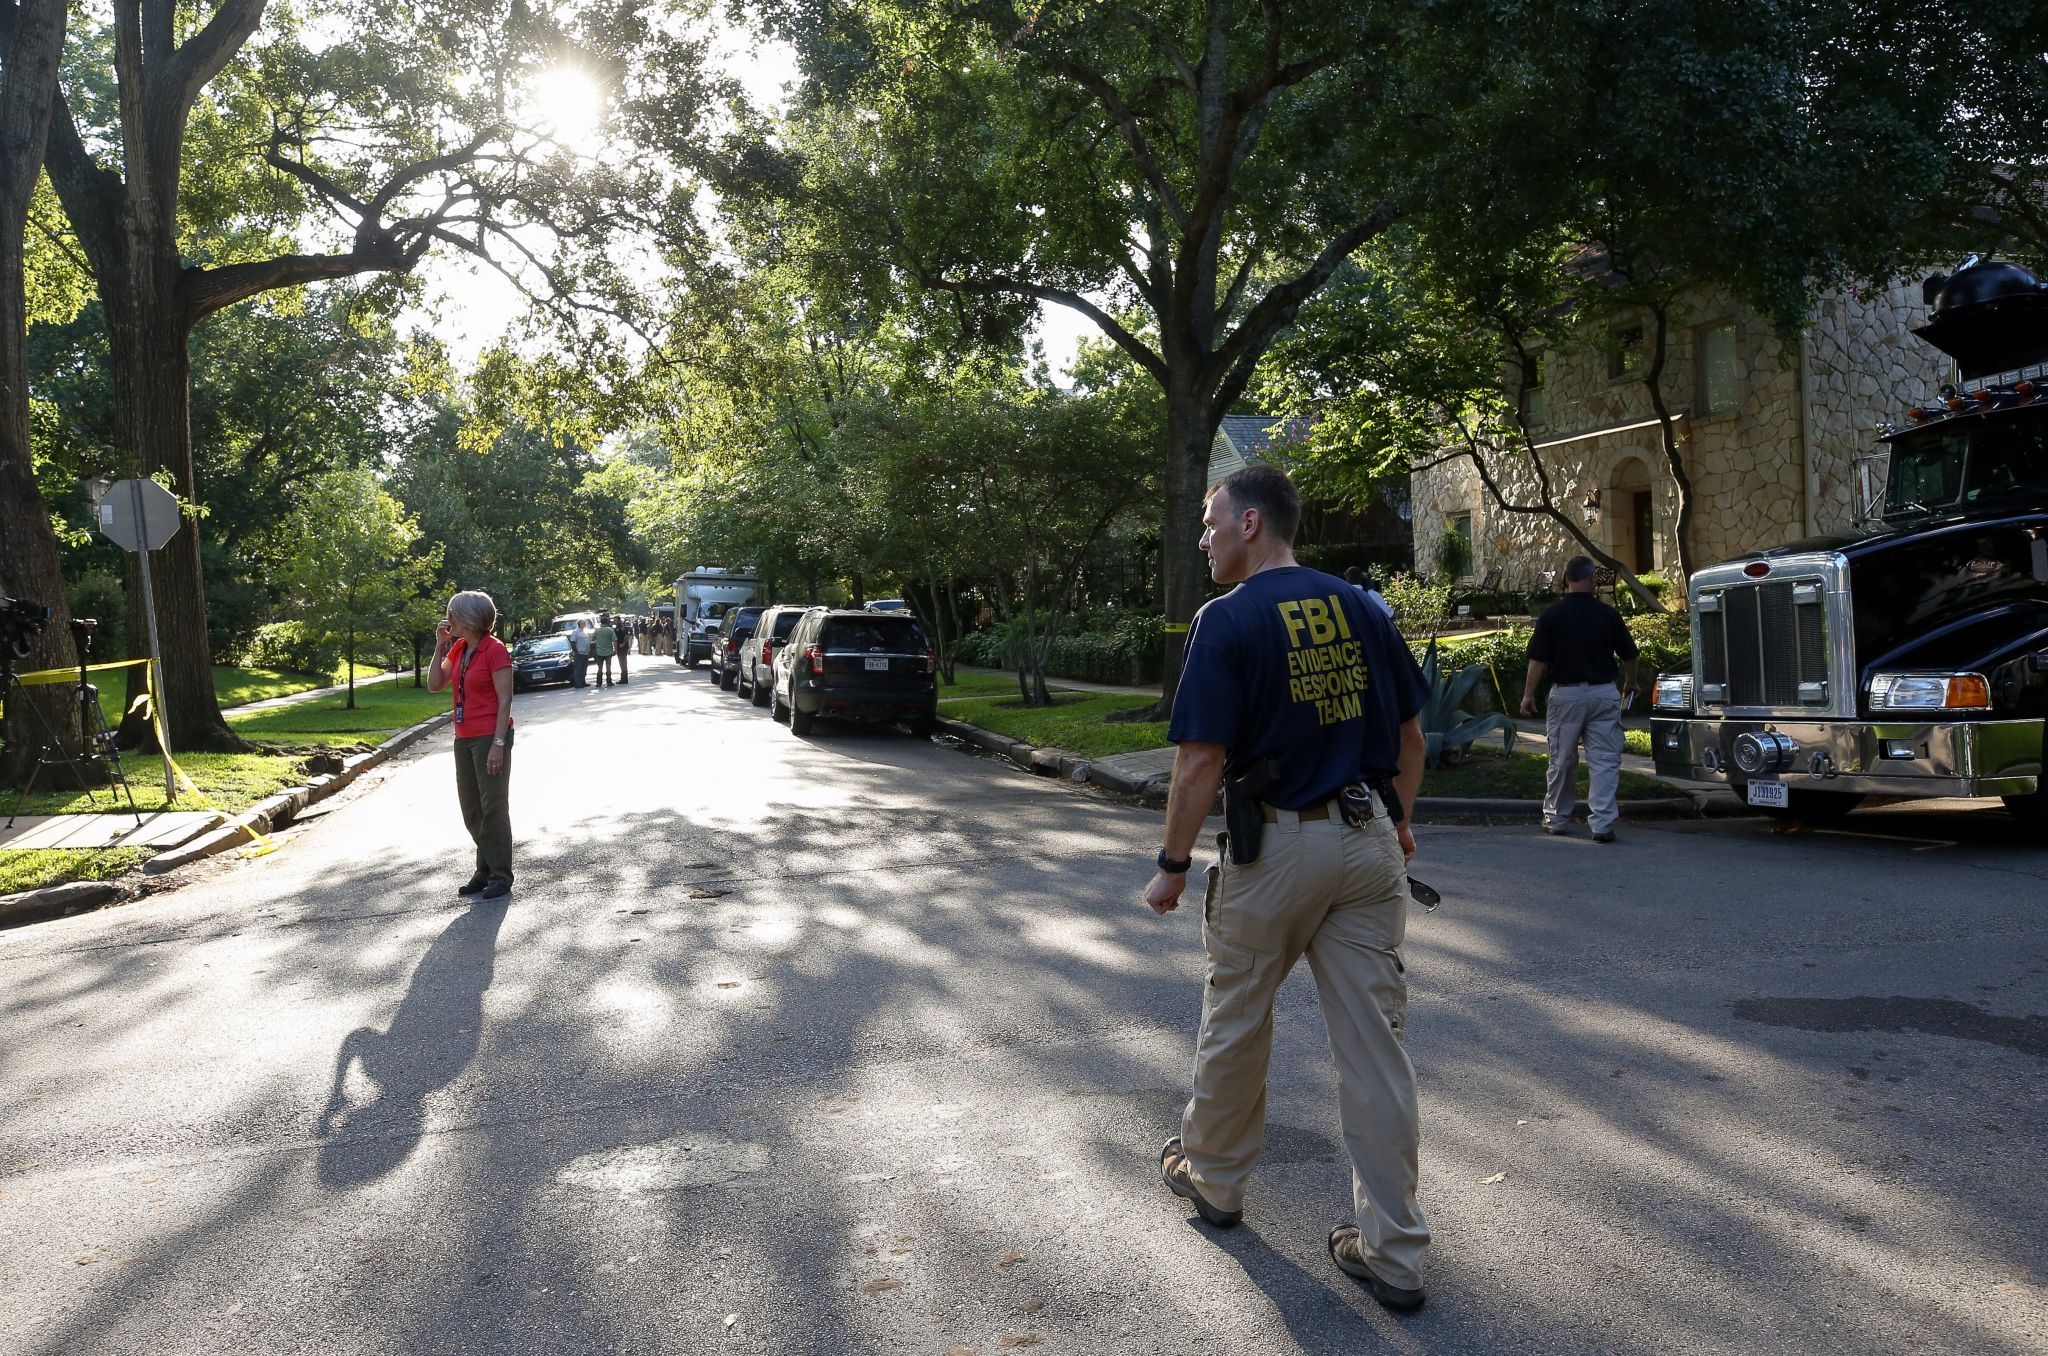 Suspect arrested trying to plant bomb at Confederate statue in Houston's Hermann Park